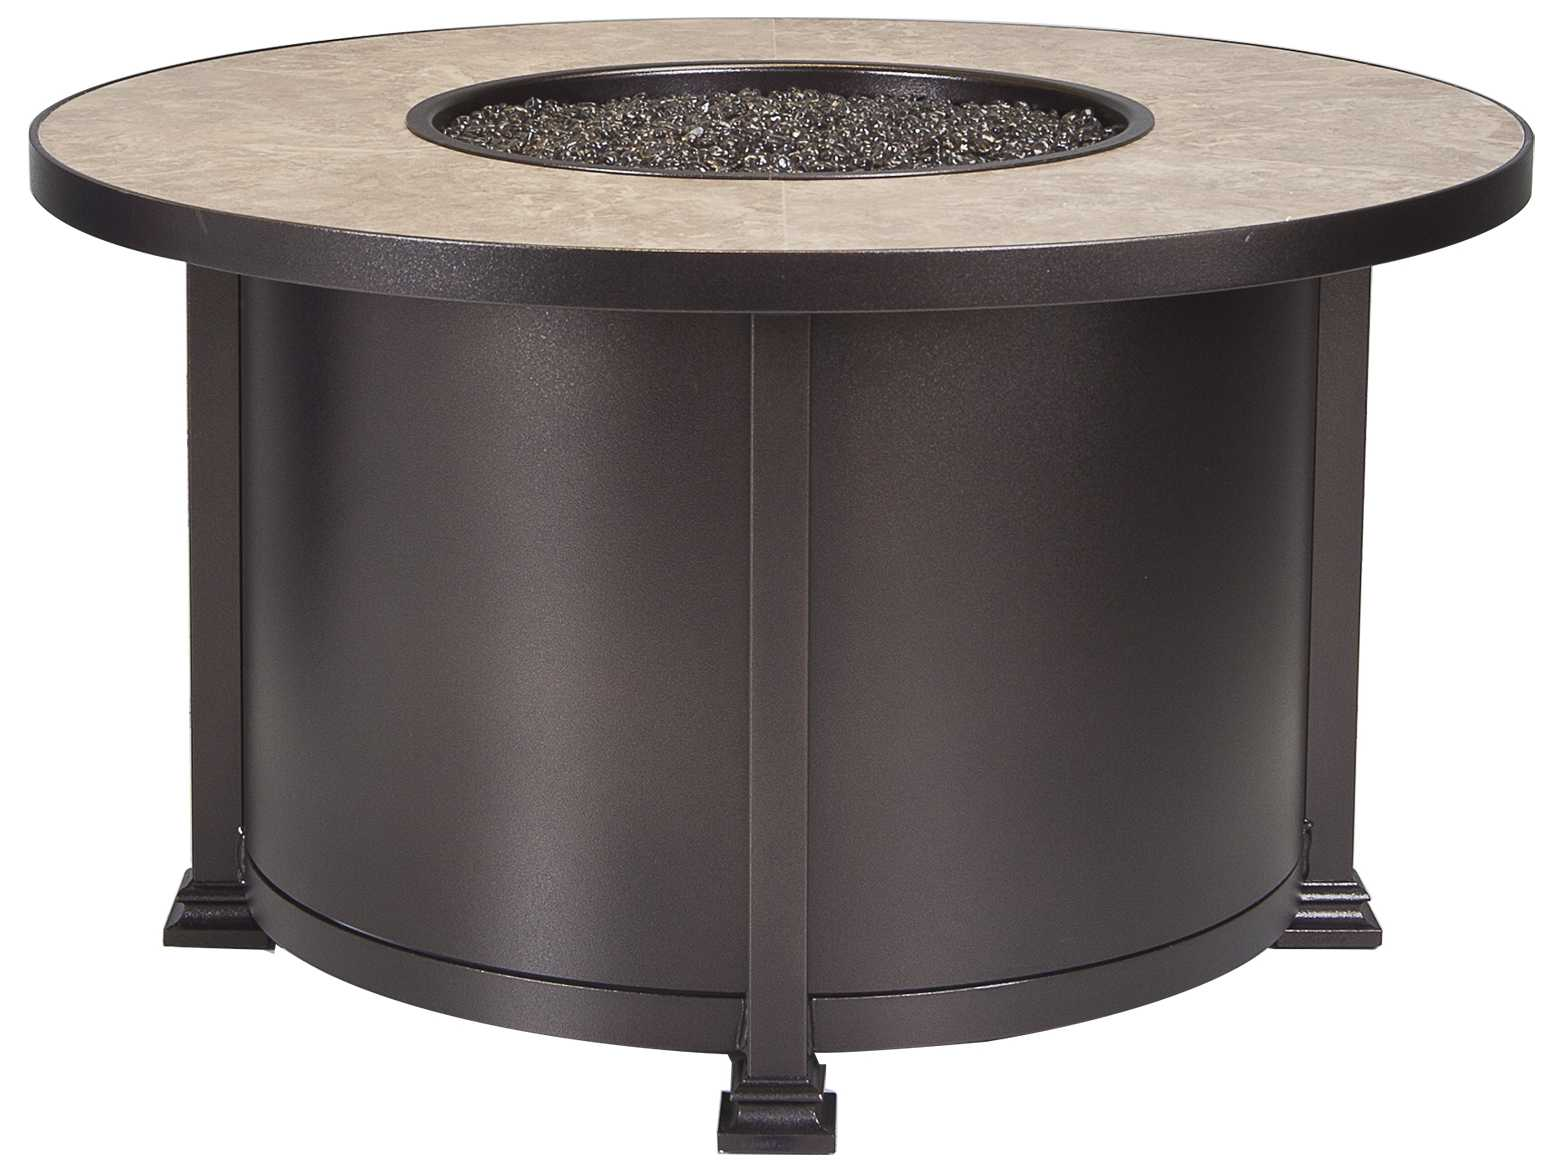 ... fireside santorini wrought iron round patio fire pit table ow5108a